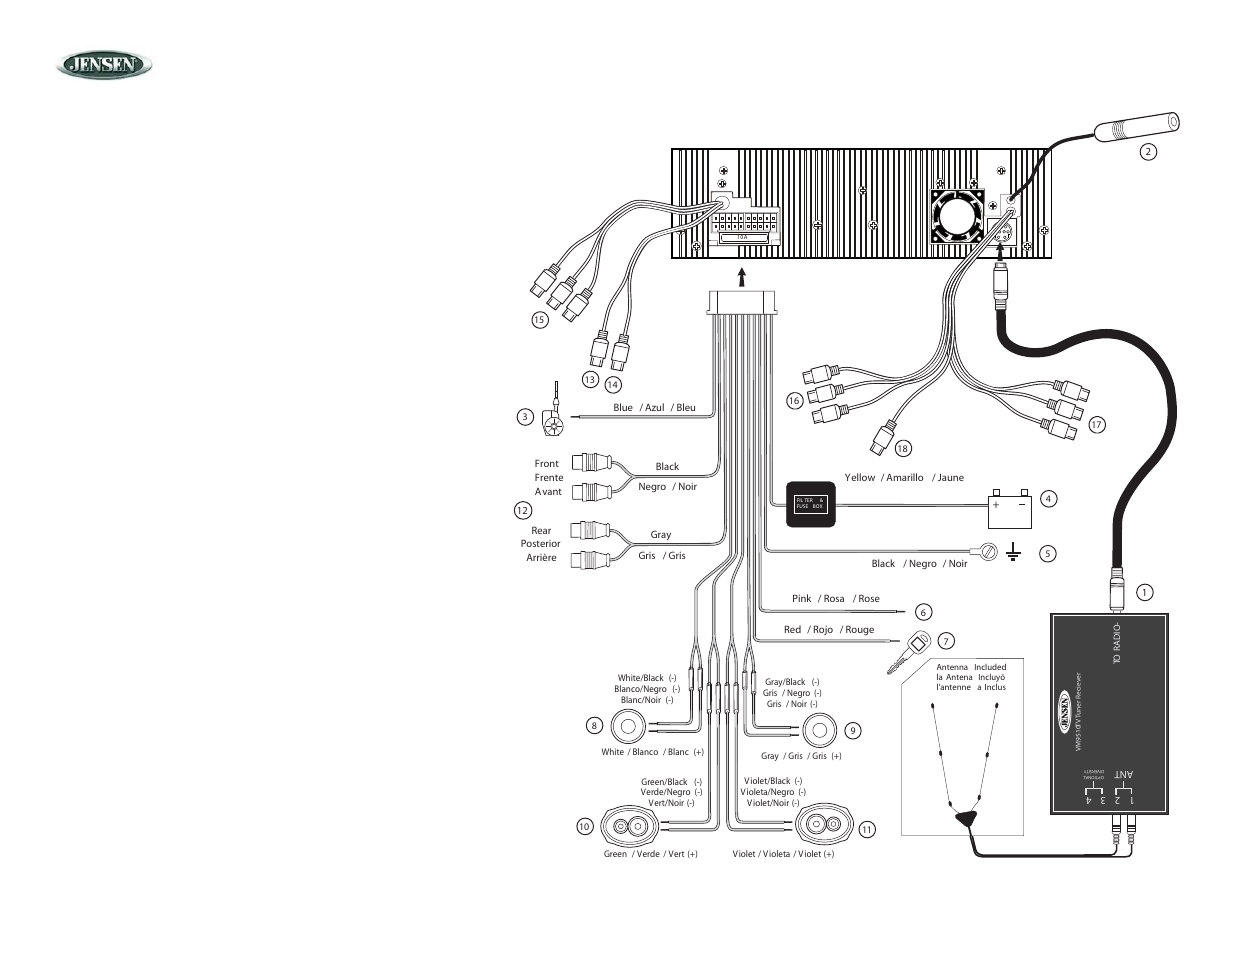 Jensen vm wiring harness diagram